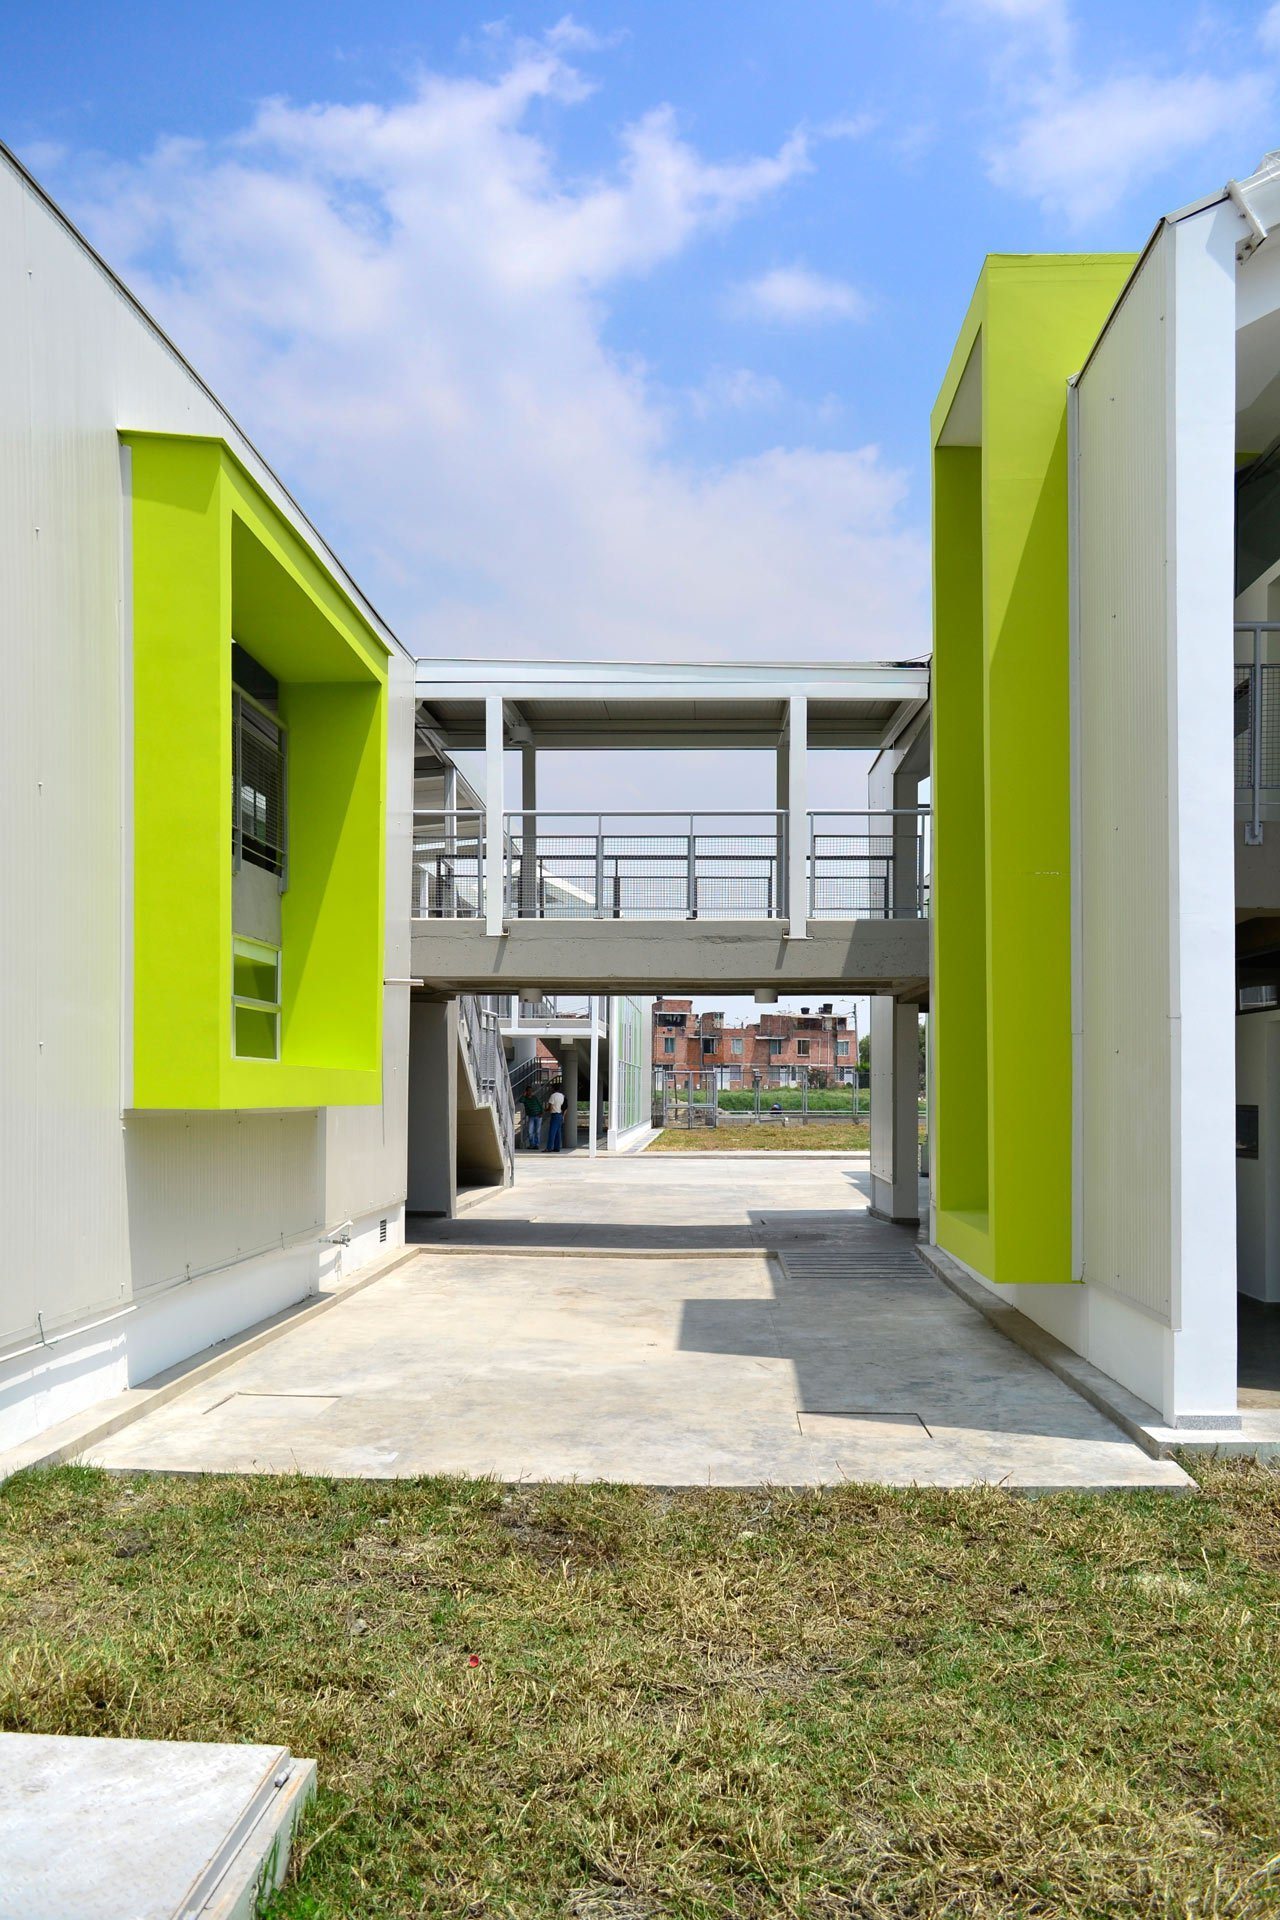 Gallery of el caracol kindergarten demos arquitectos 9 for Caracoles de jardin